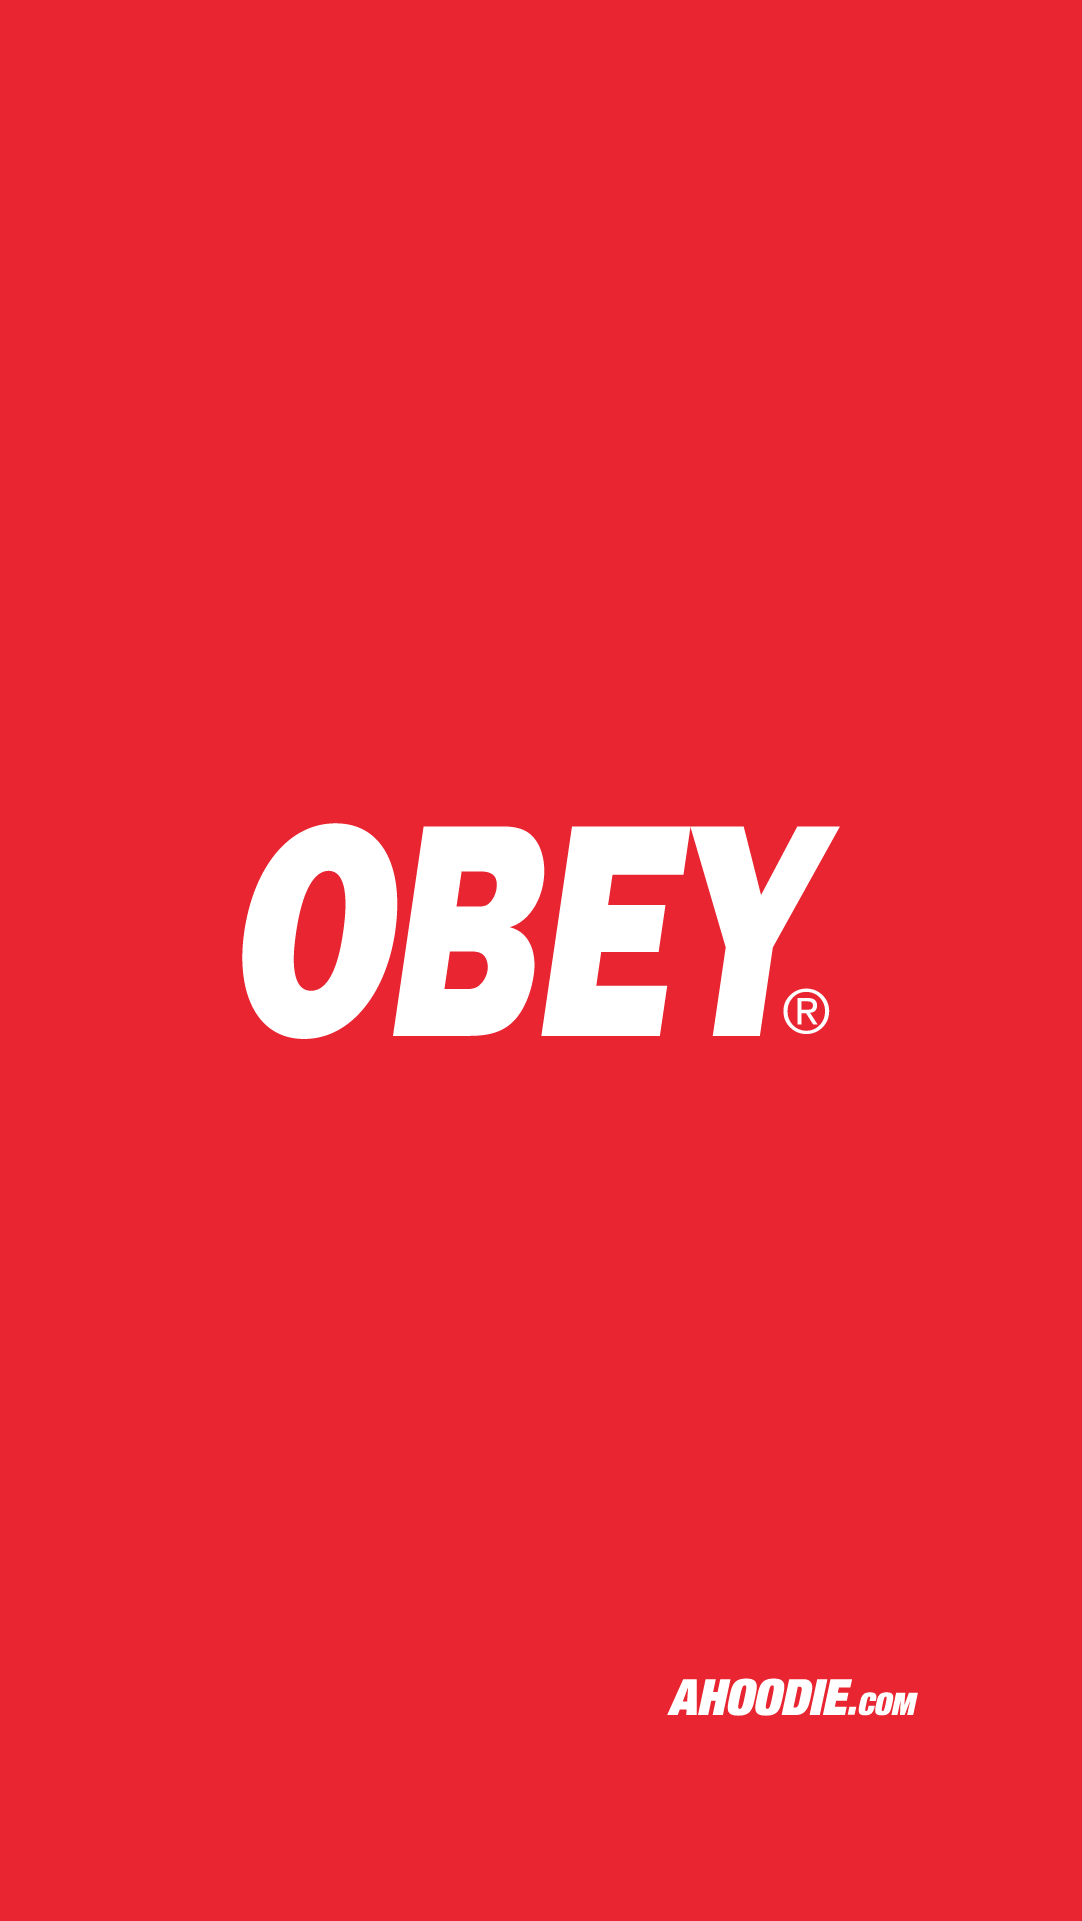 Obey Logo Wallpapers